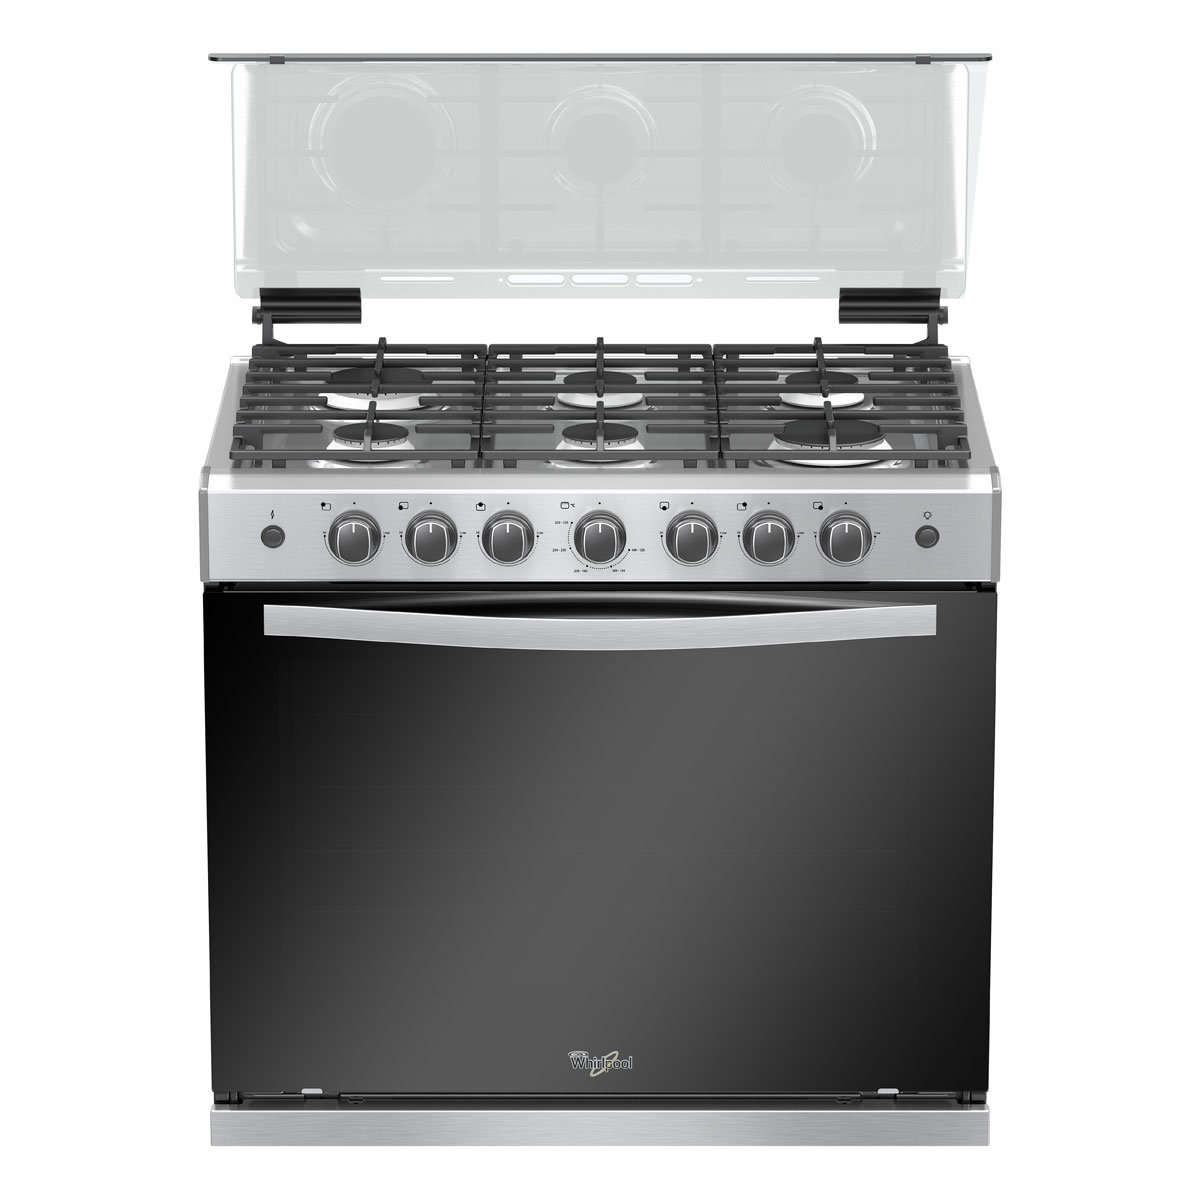 Hp 30 capelo 6 quemadores we5846s whirpool sears com mx for Estufa whirlpool 6 quemadores precio